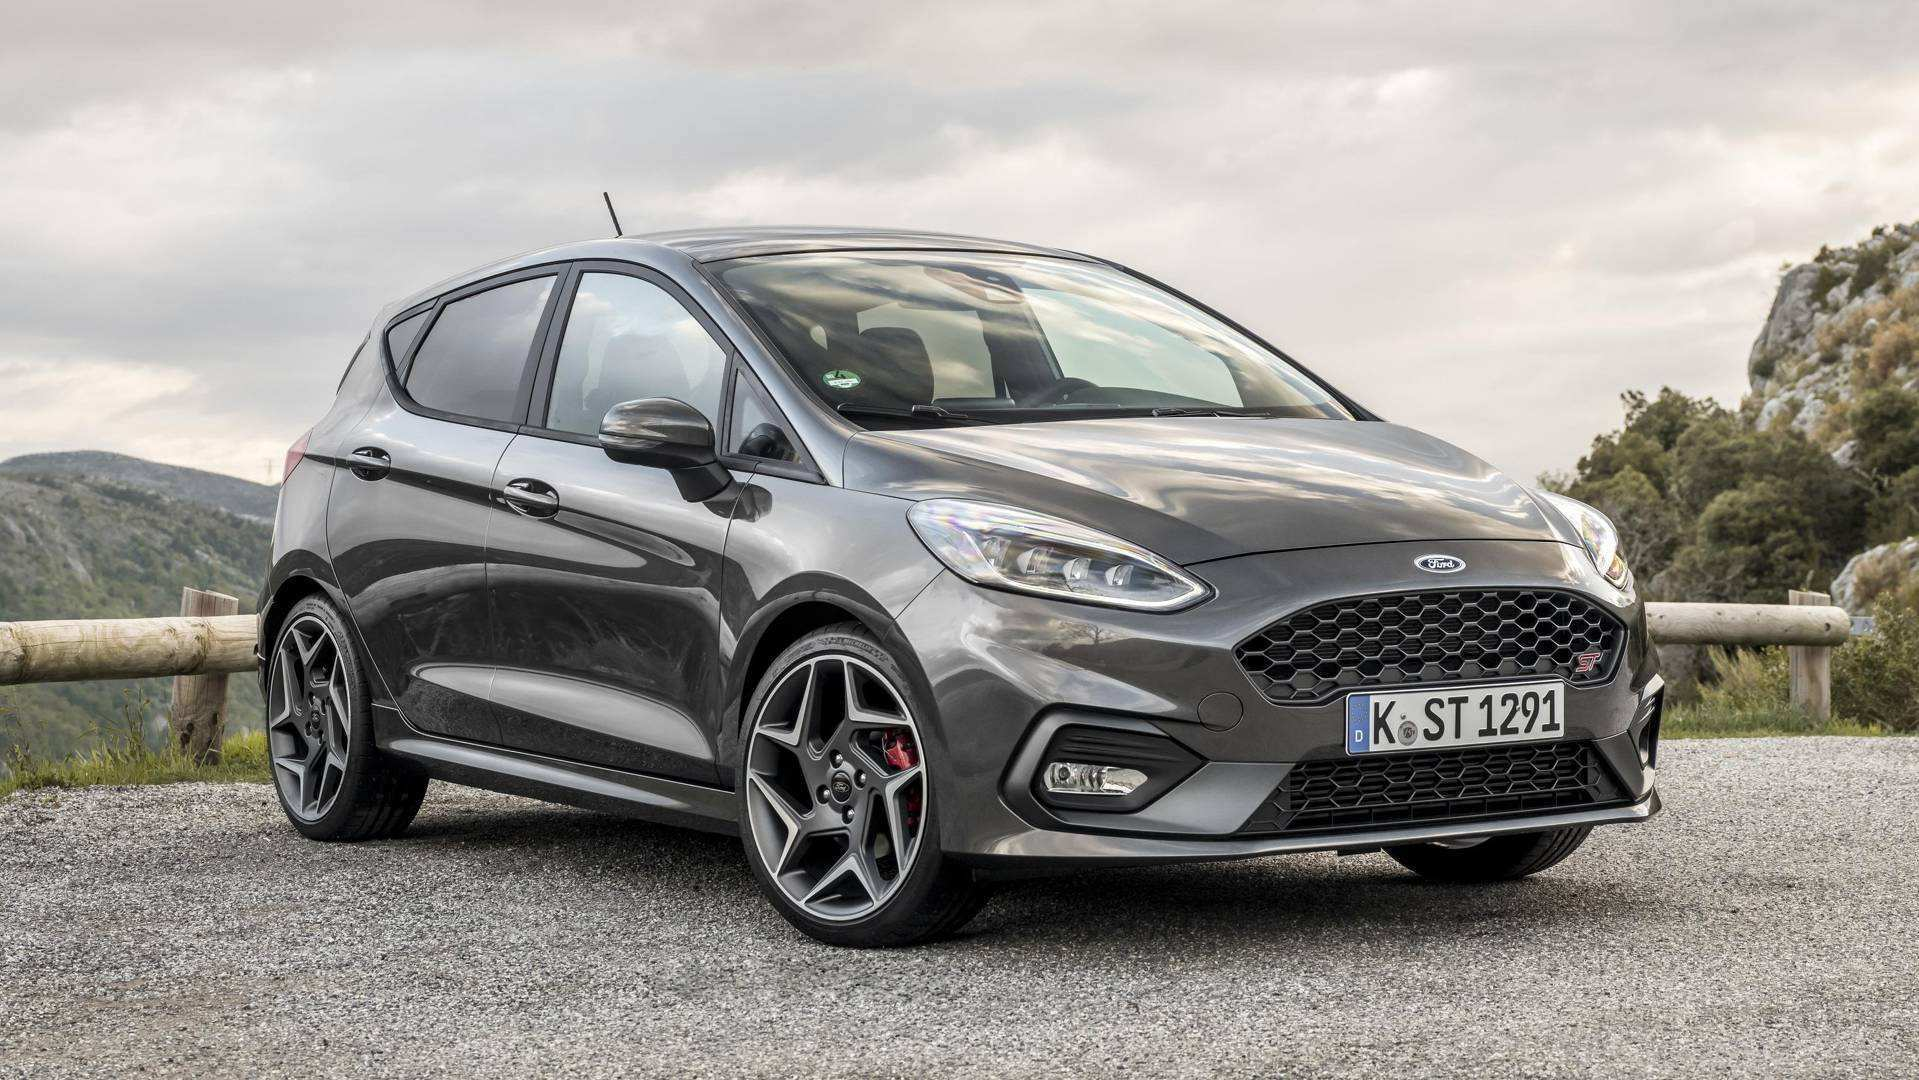 66 The 2020 Ford Fiesta St Rs Ratings